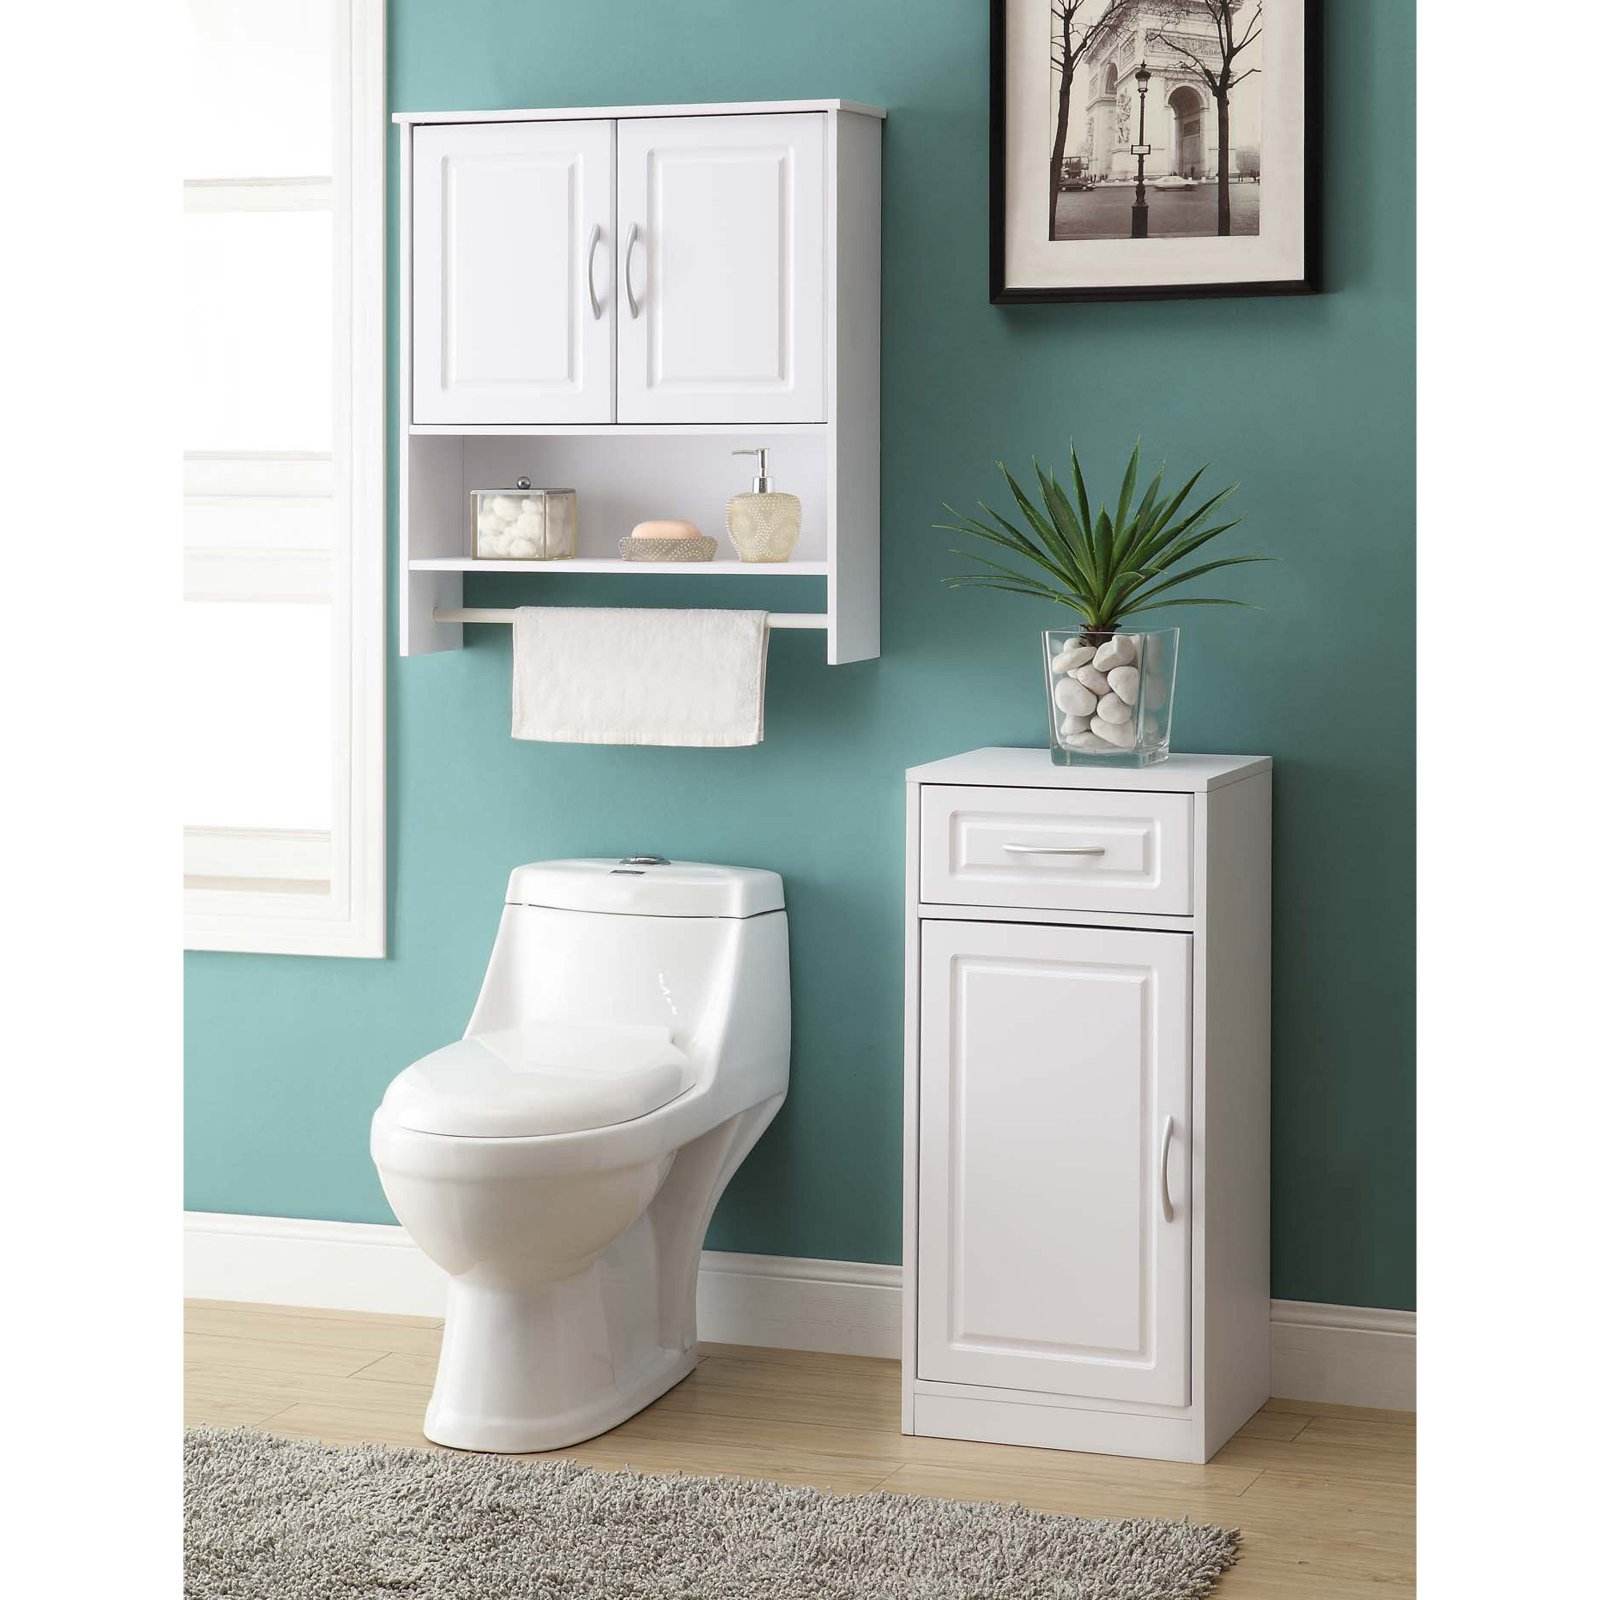 4D Concepts White Bathroom Base Cabinet with One Door - Walmart.com